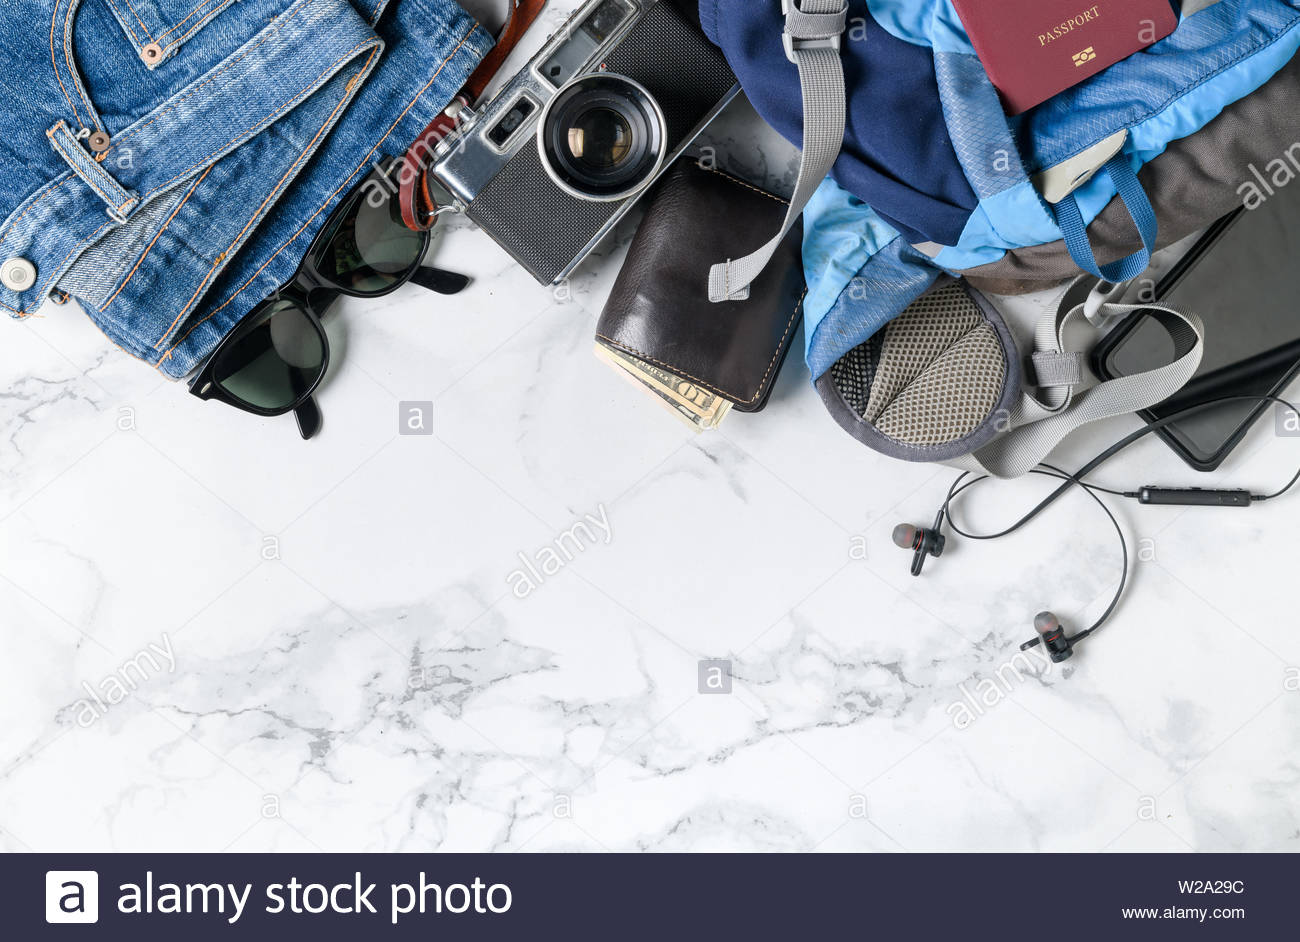 prepare backpack accessories and travel items on marble background 1300x942